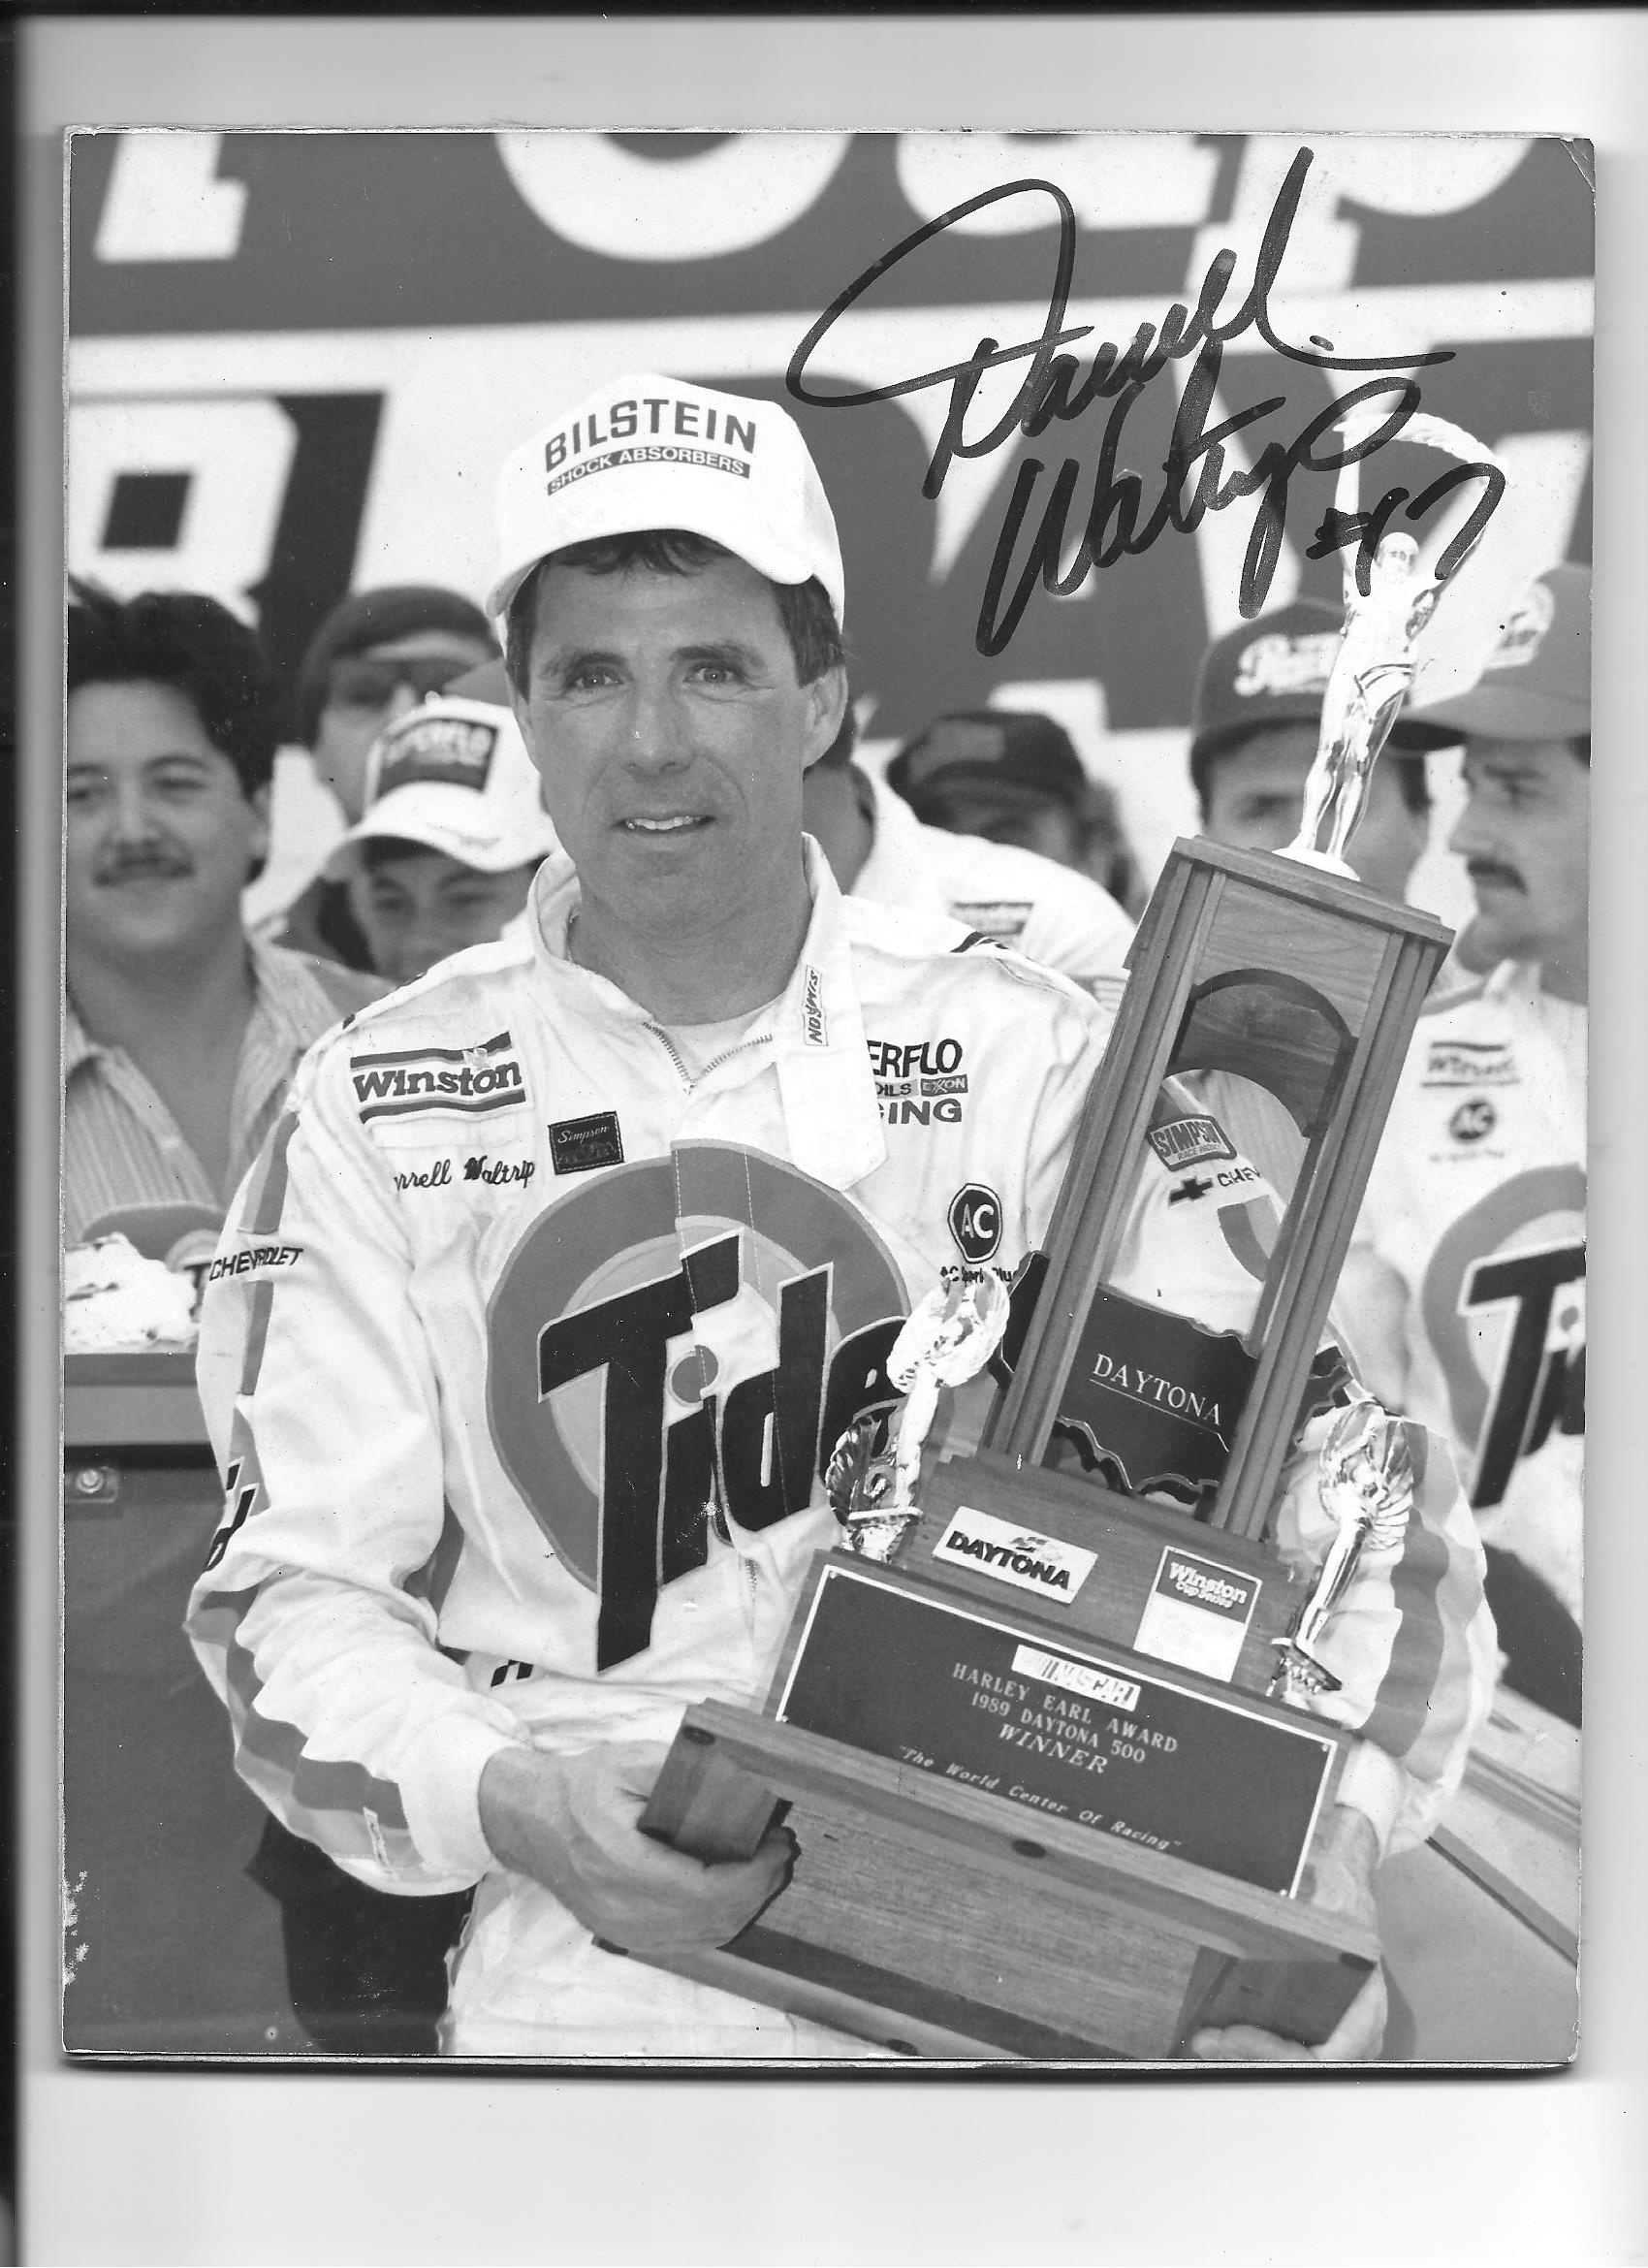 https://0201.nccdn.net/4_2/000/000/00d/f43/DW-1989-DAYTONA-WINNER-001-1700x2339.jpg